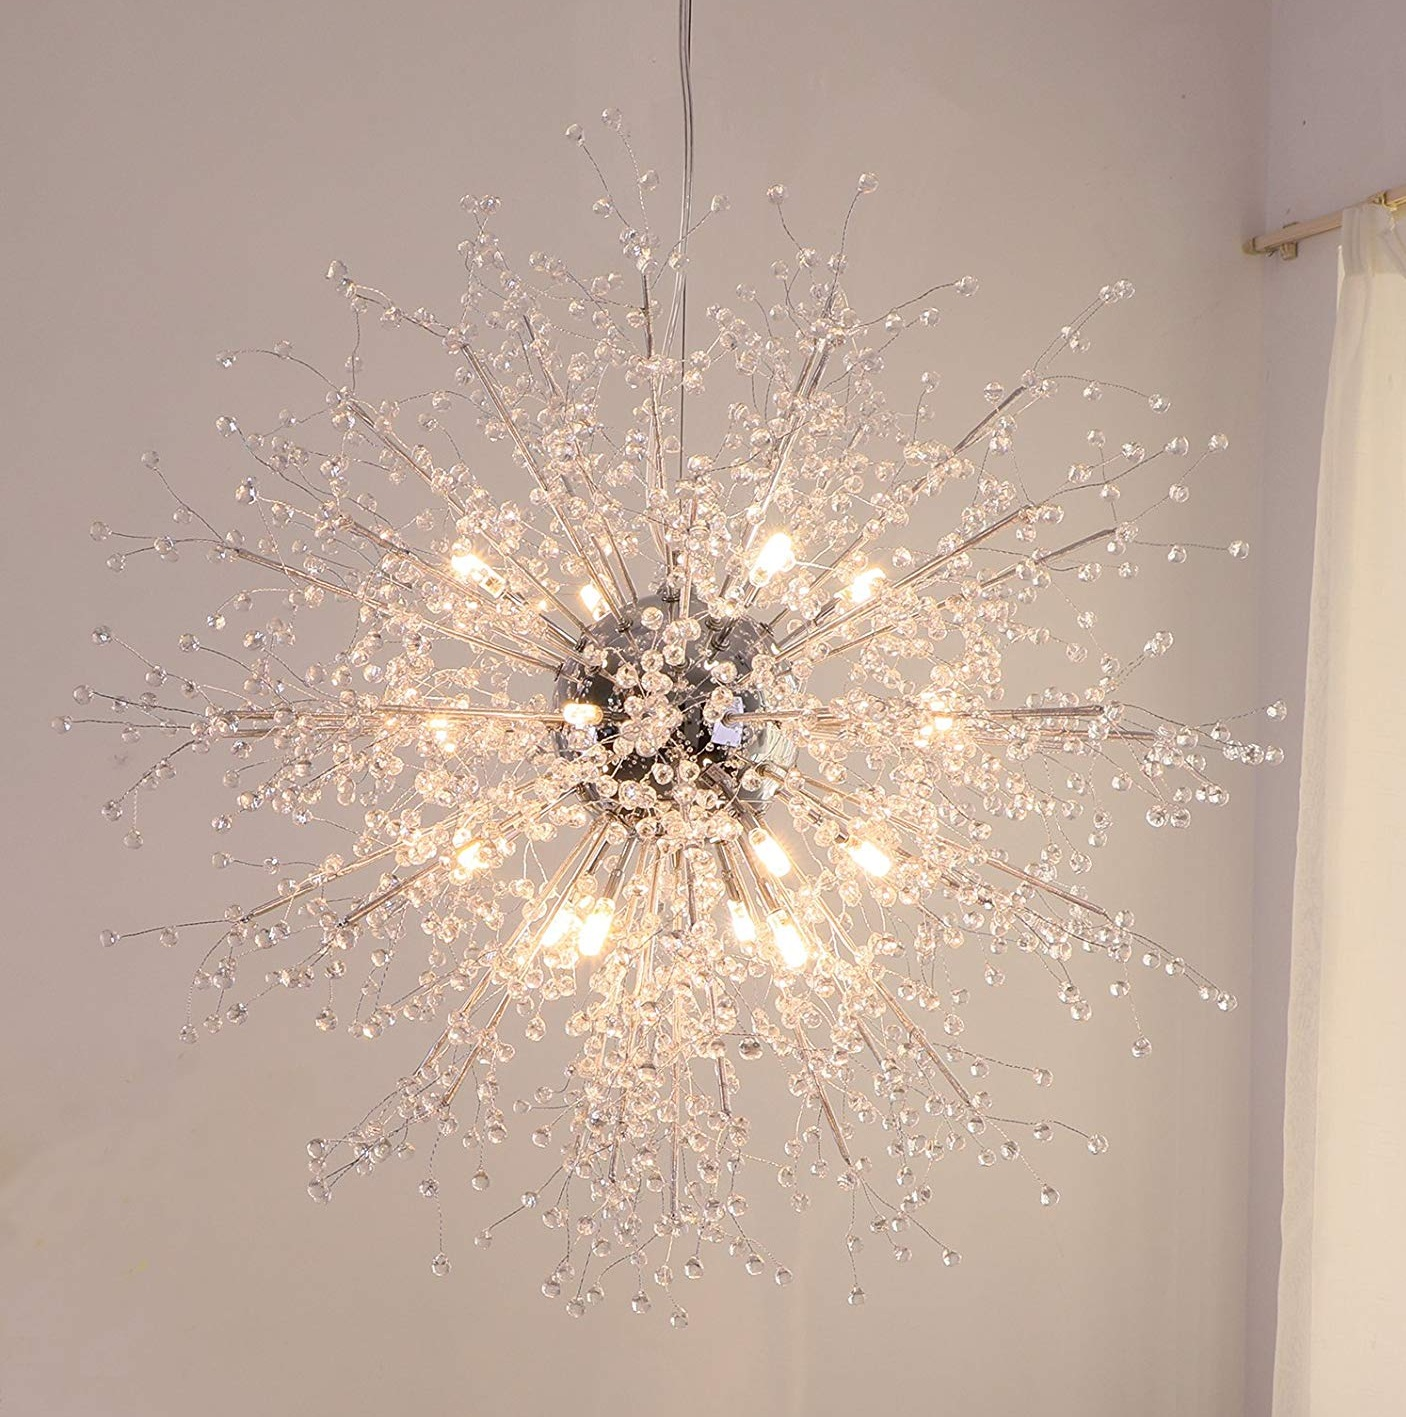 T03 modern designing hanging holiday decorative crystal lighting lamp light fixture chandelier pendant led light from china